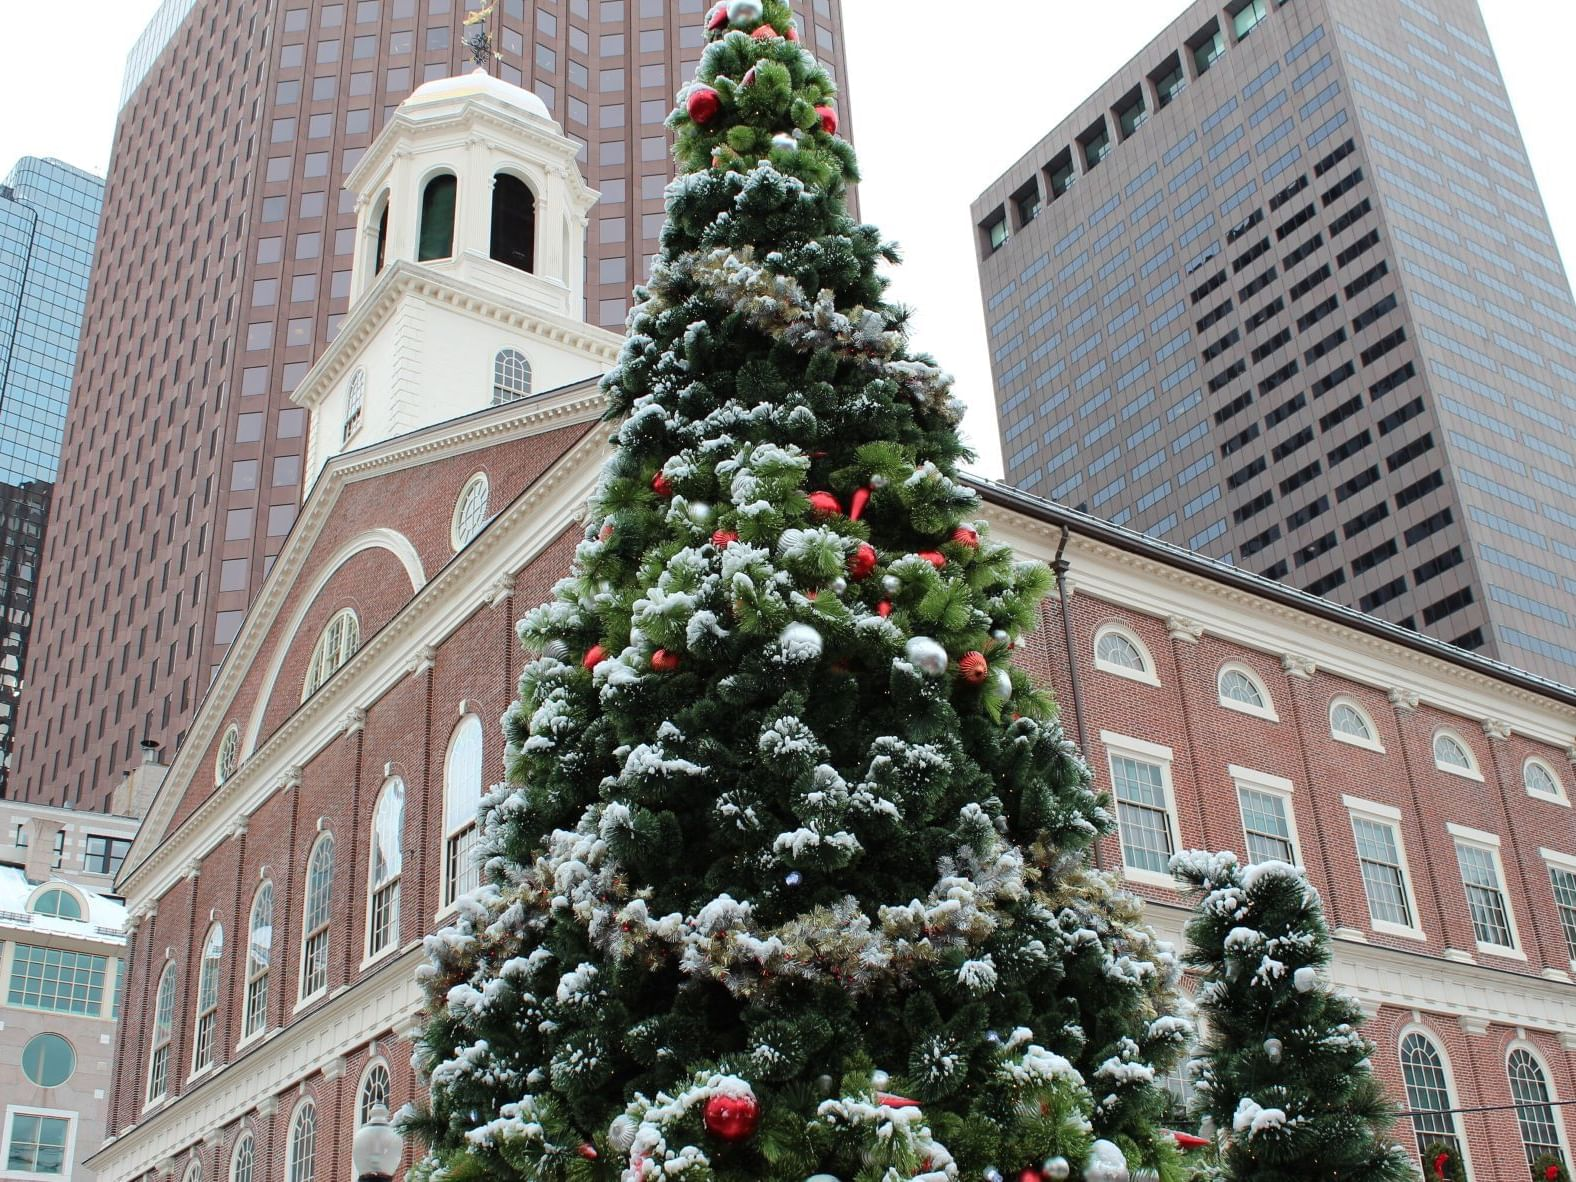 A decorated evergreen tree in front of a city scene with brick and glass buildings